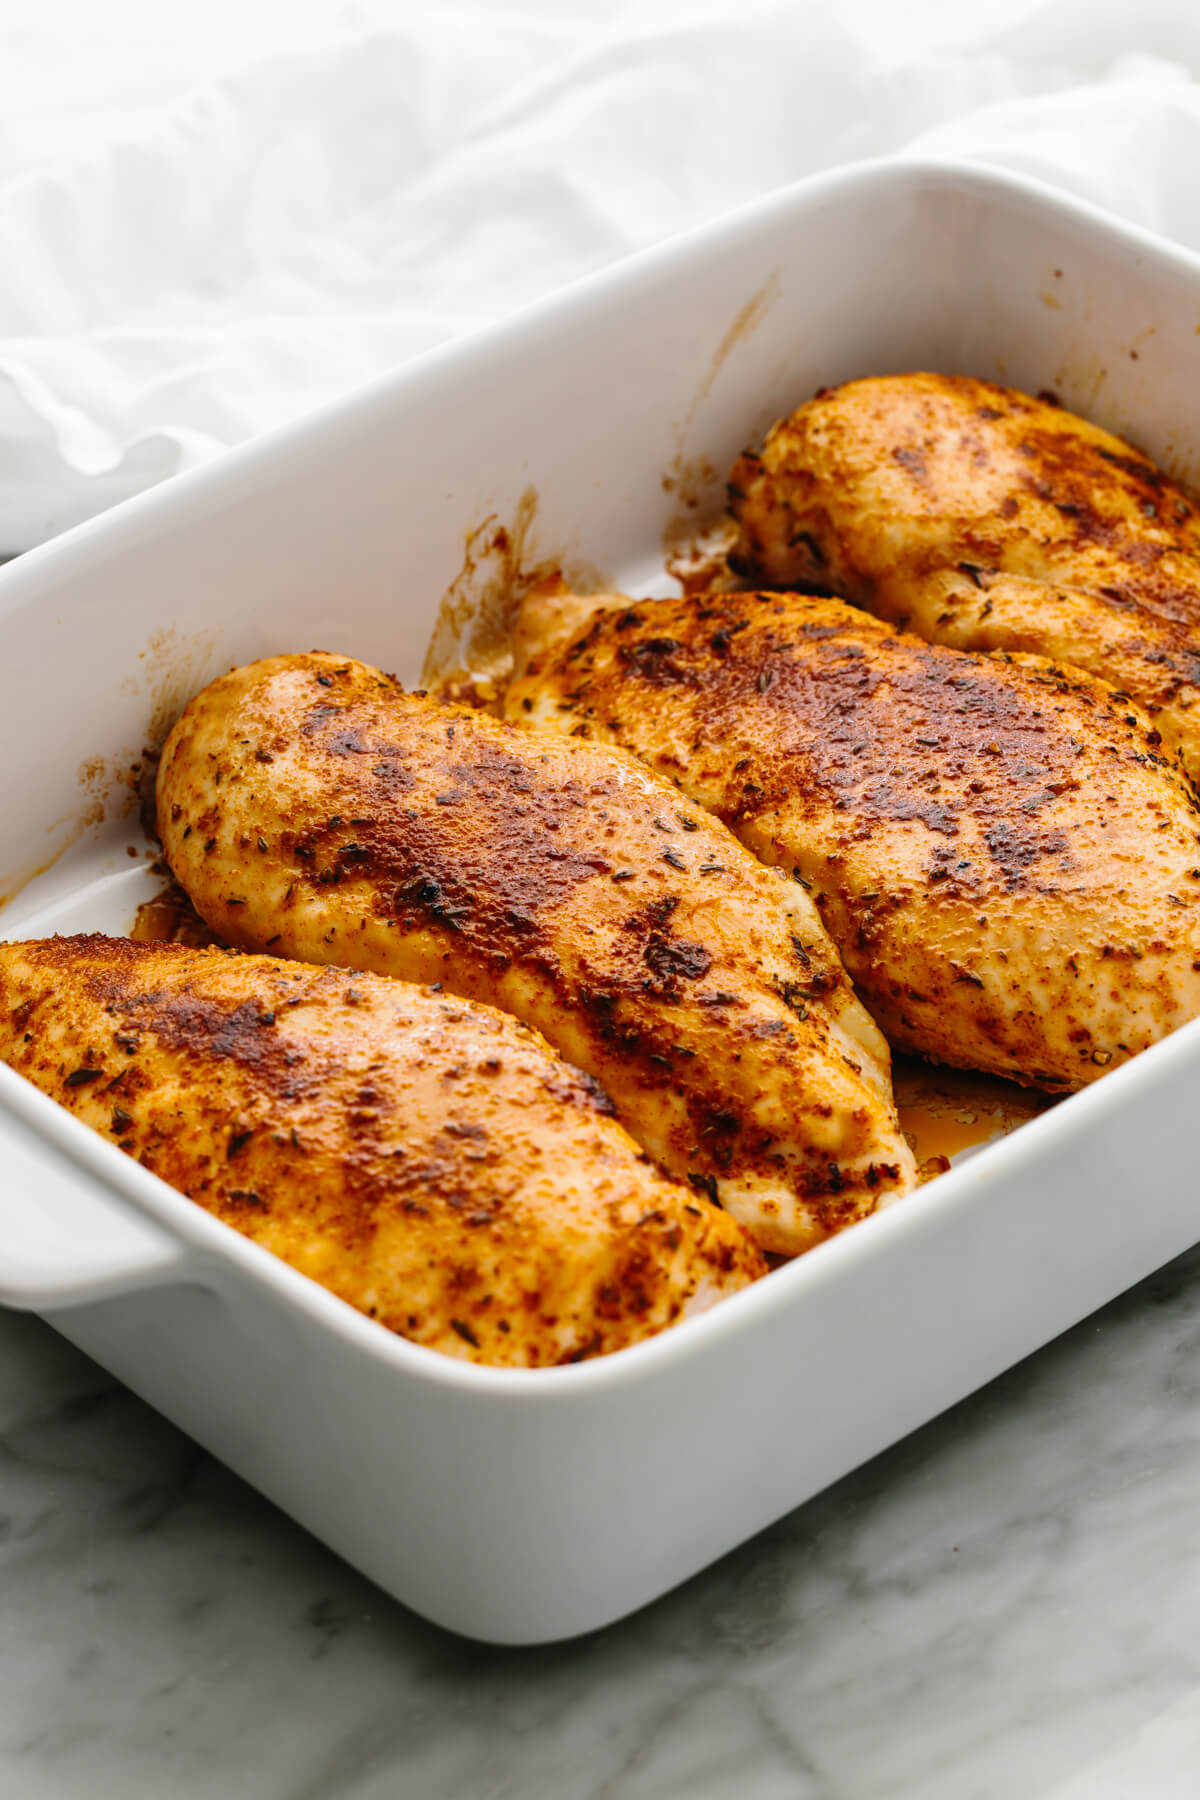 Four chicken breasts in a baking dish.